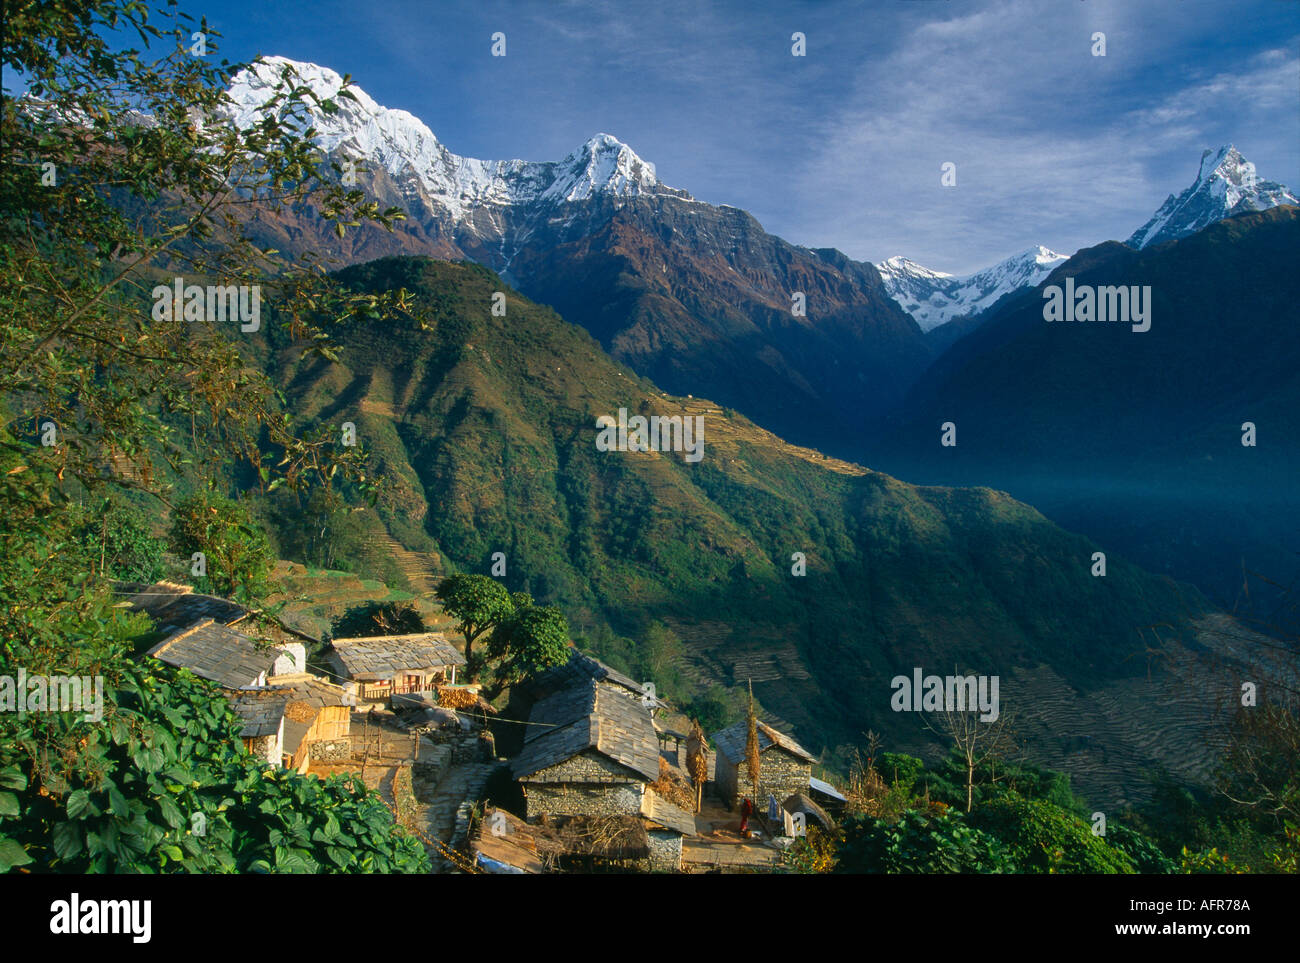 Farmstead in Ghandruk the Annpurna Himalaya Annapurna Ieft Machhauchhre right Nepal - Stock Image